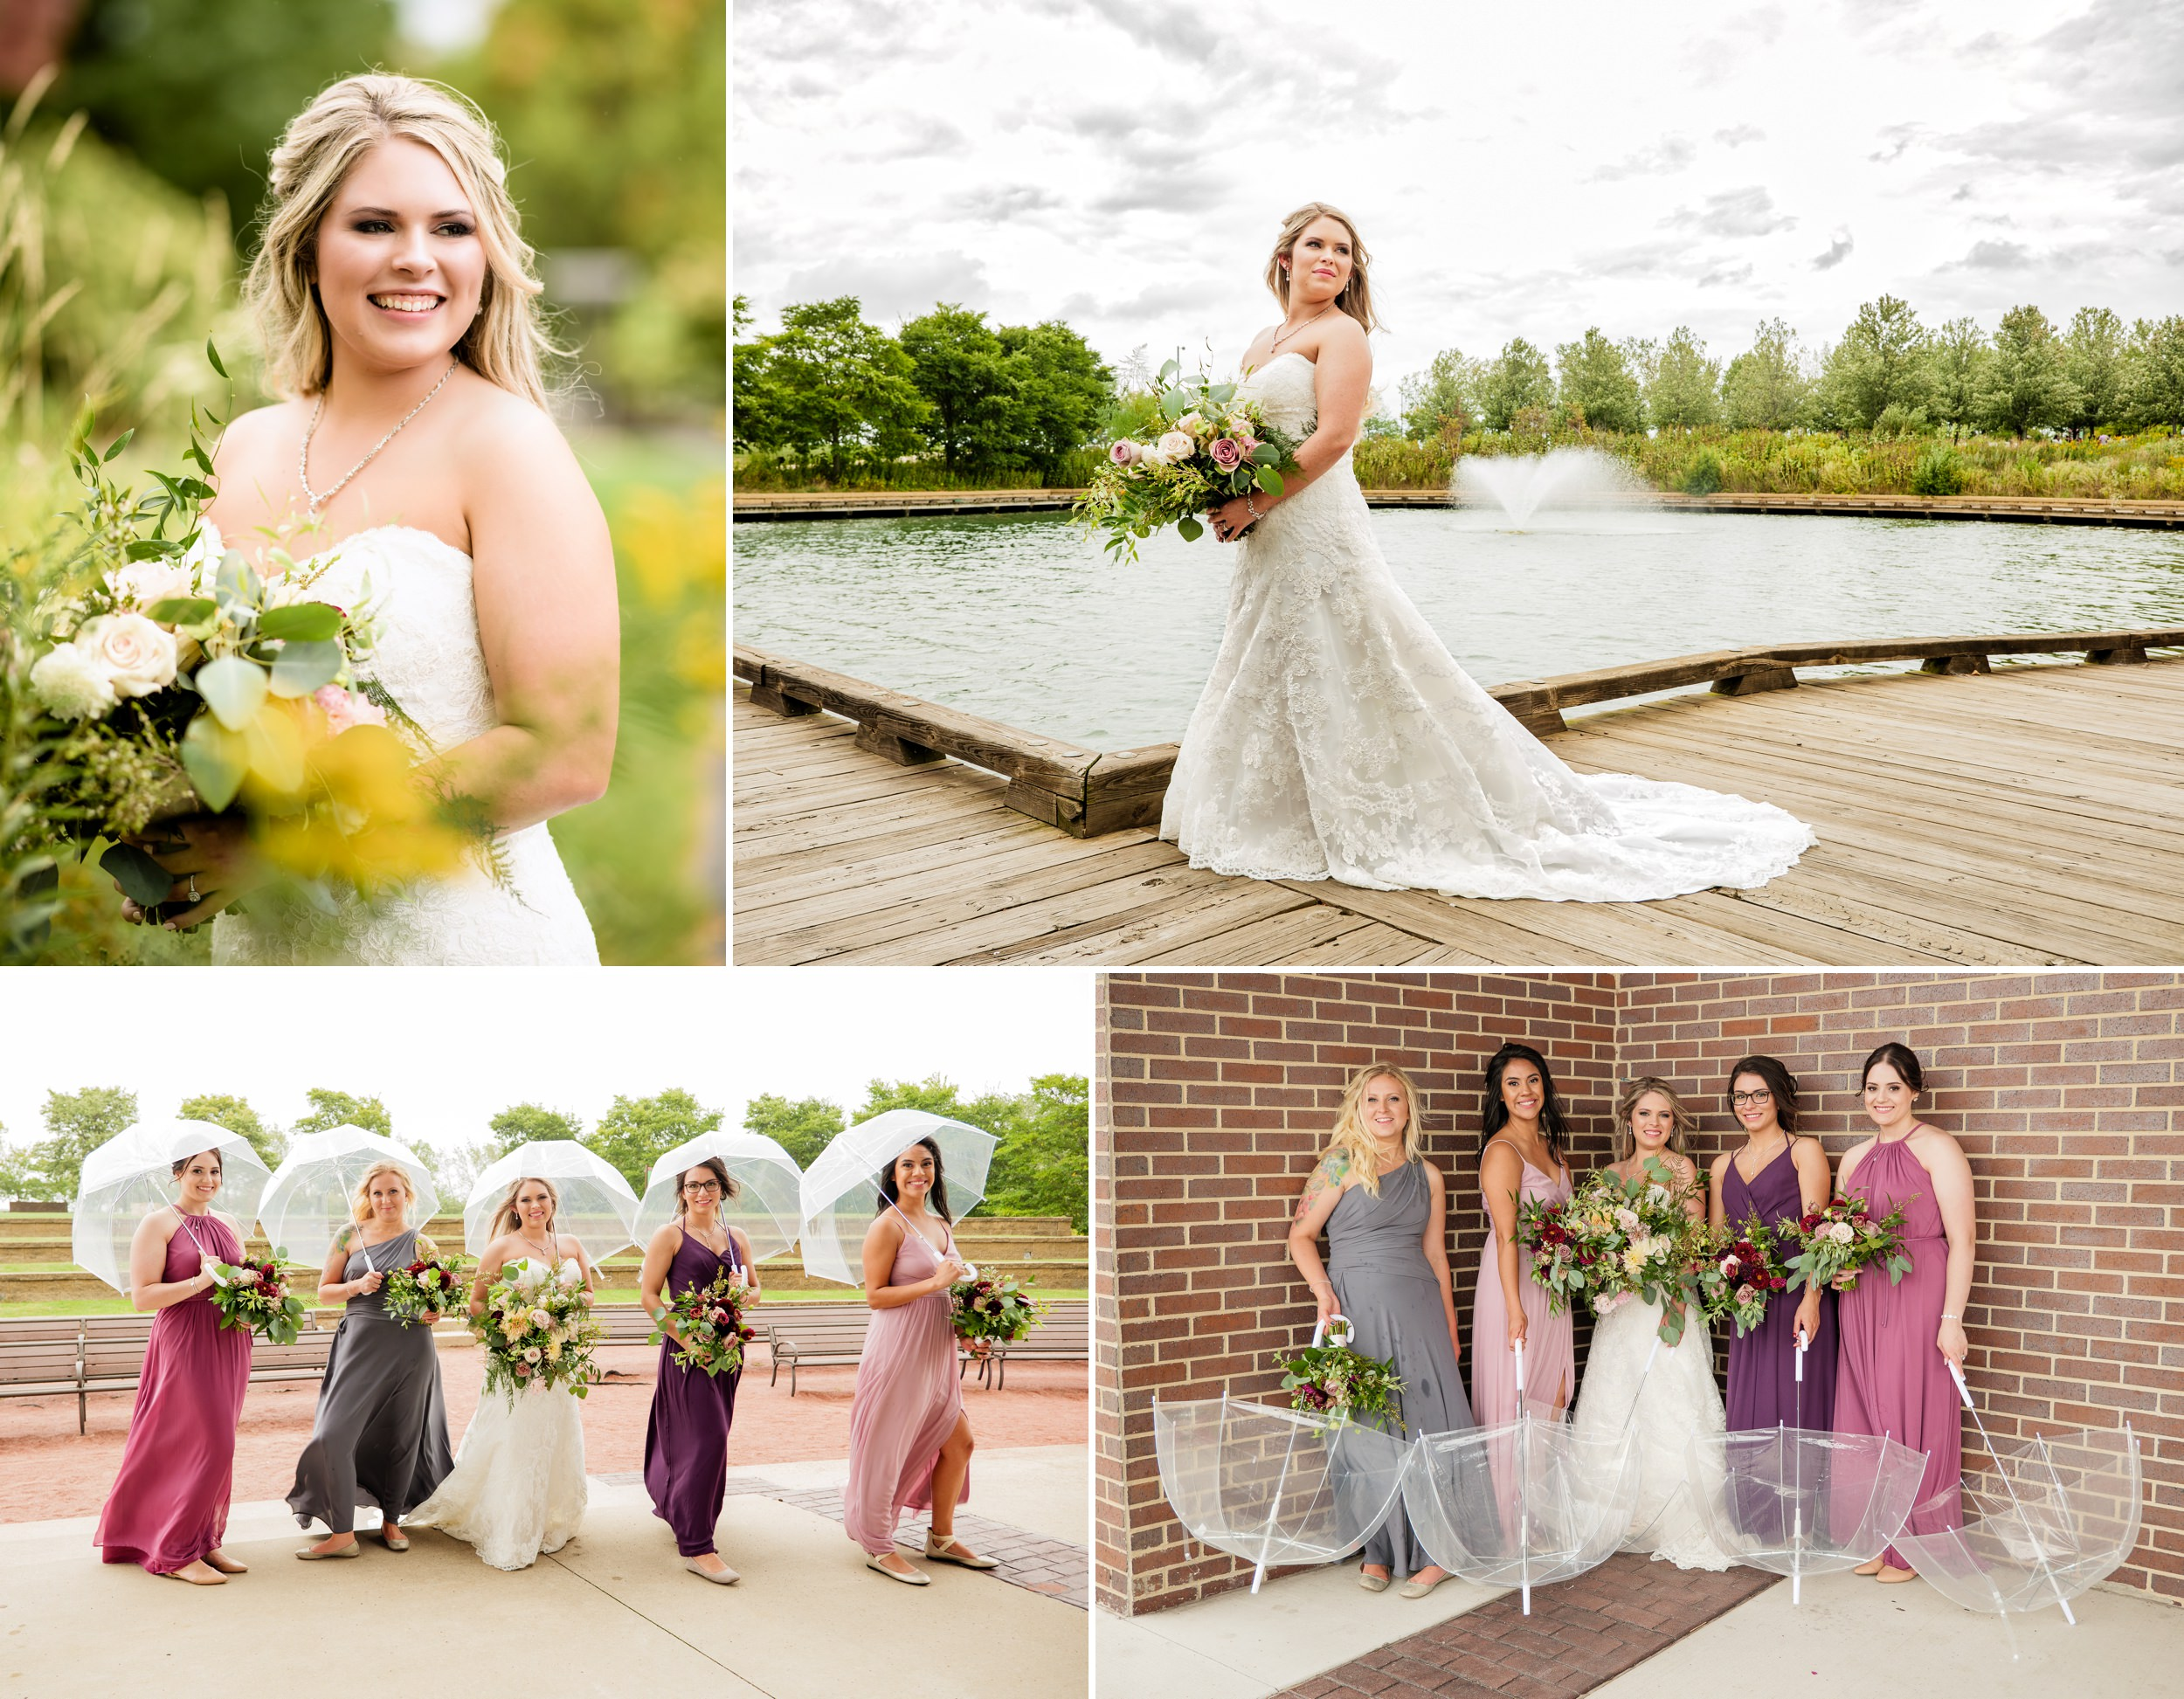 The bride and her bridesmaids at Centennial Park.